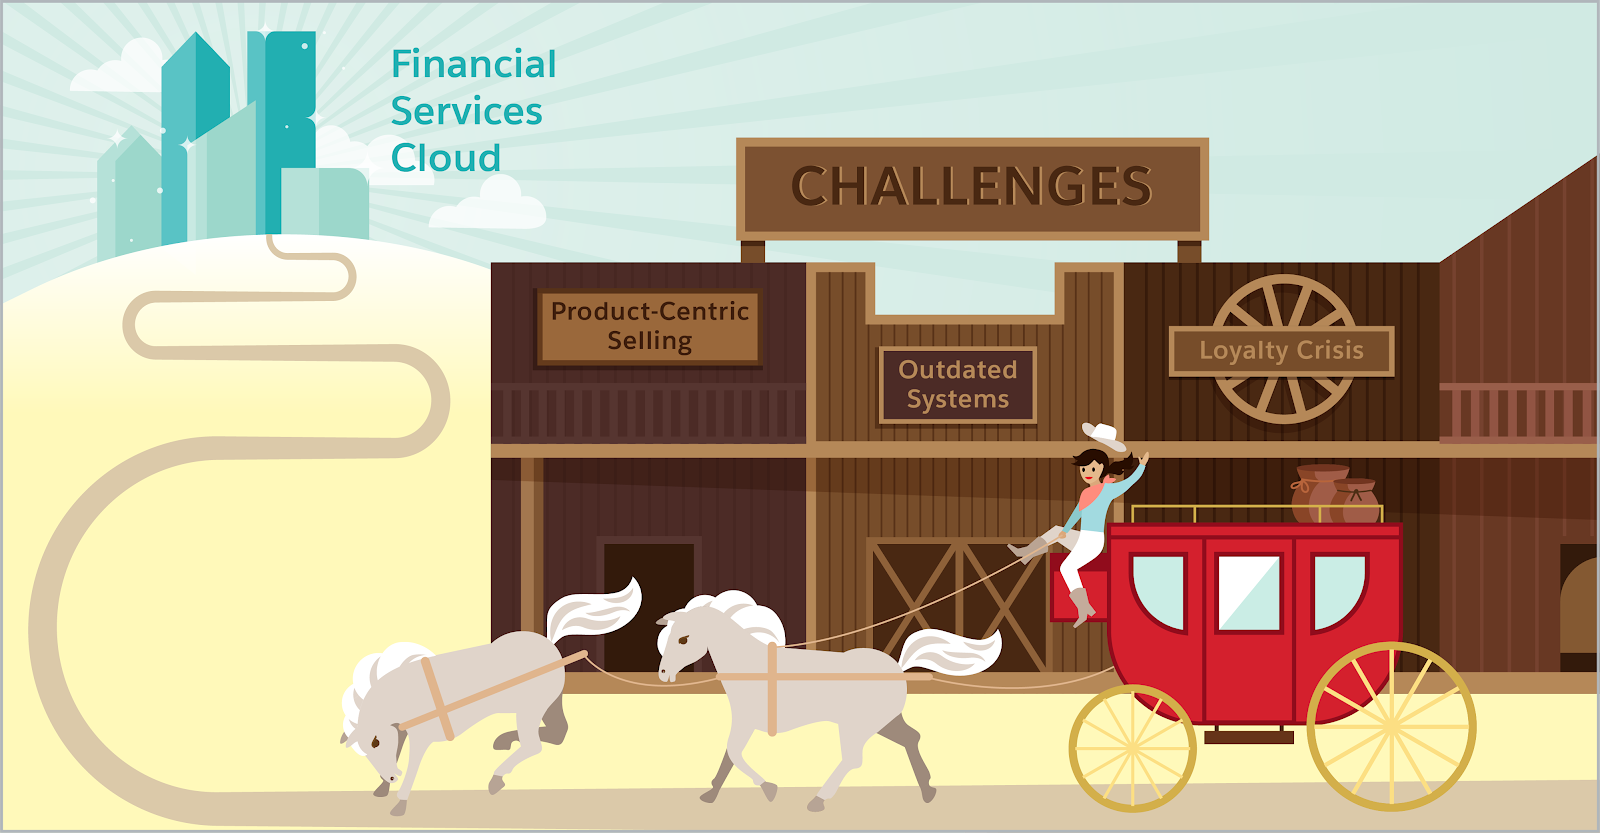 Image of a cowboy driving a stagecoach through an old Western town. There are three buildings labeled Product-Centric Selling, Loyalty Crisis, and Outdated Systems. In the distance, at the end of the road, there's a city called Financial Services Cloud. Light is peaking out from behind the newly built skyscrapers.